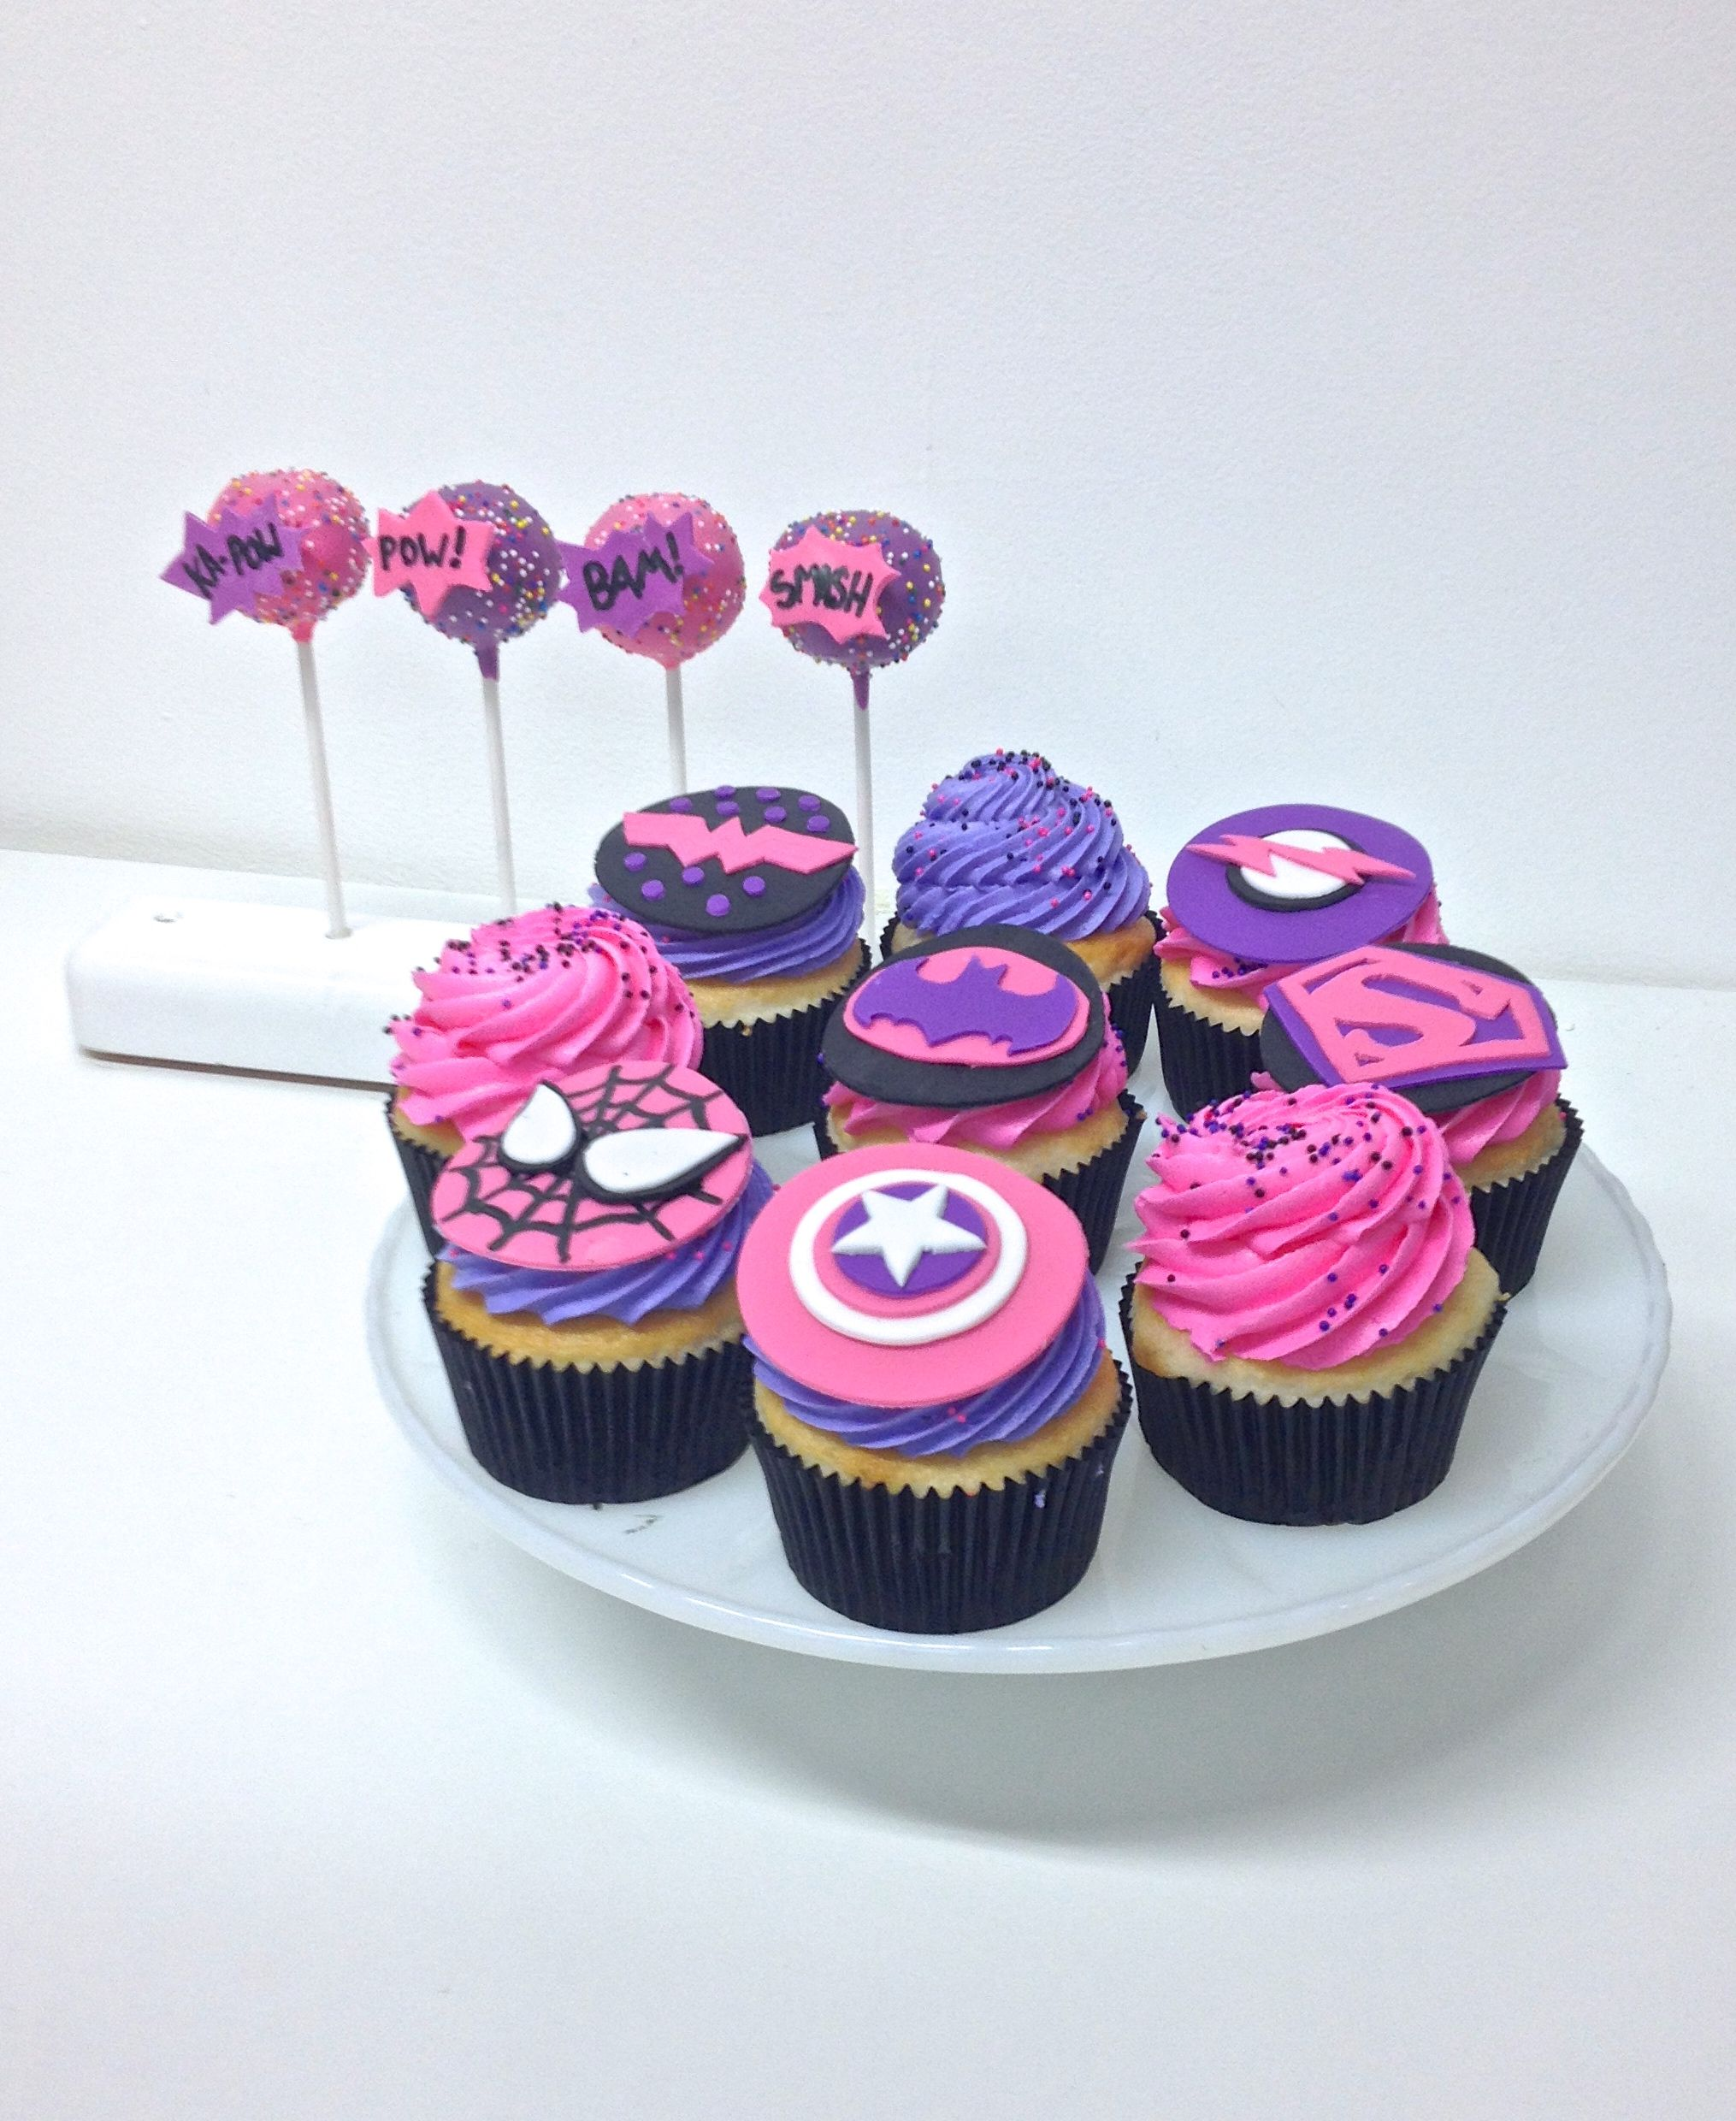 Girly Ideas For Bedrooms: Girly Superhero Party Cupcakes & Cake Pops